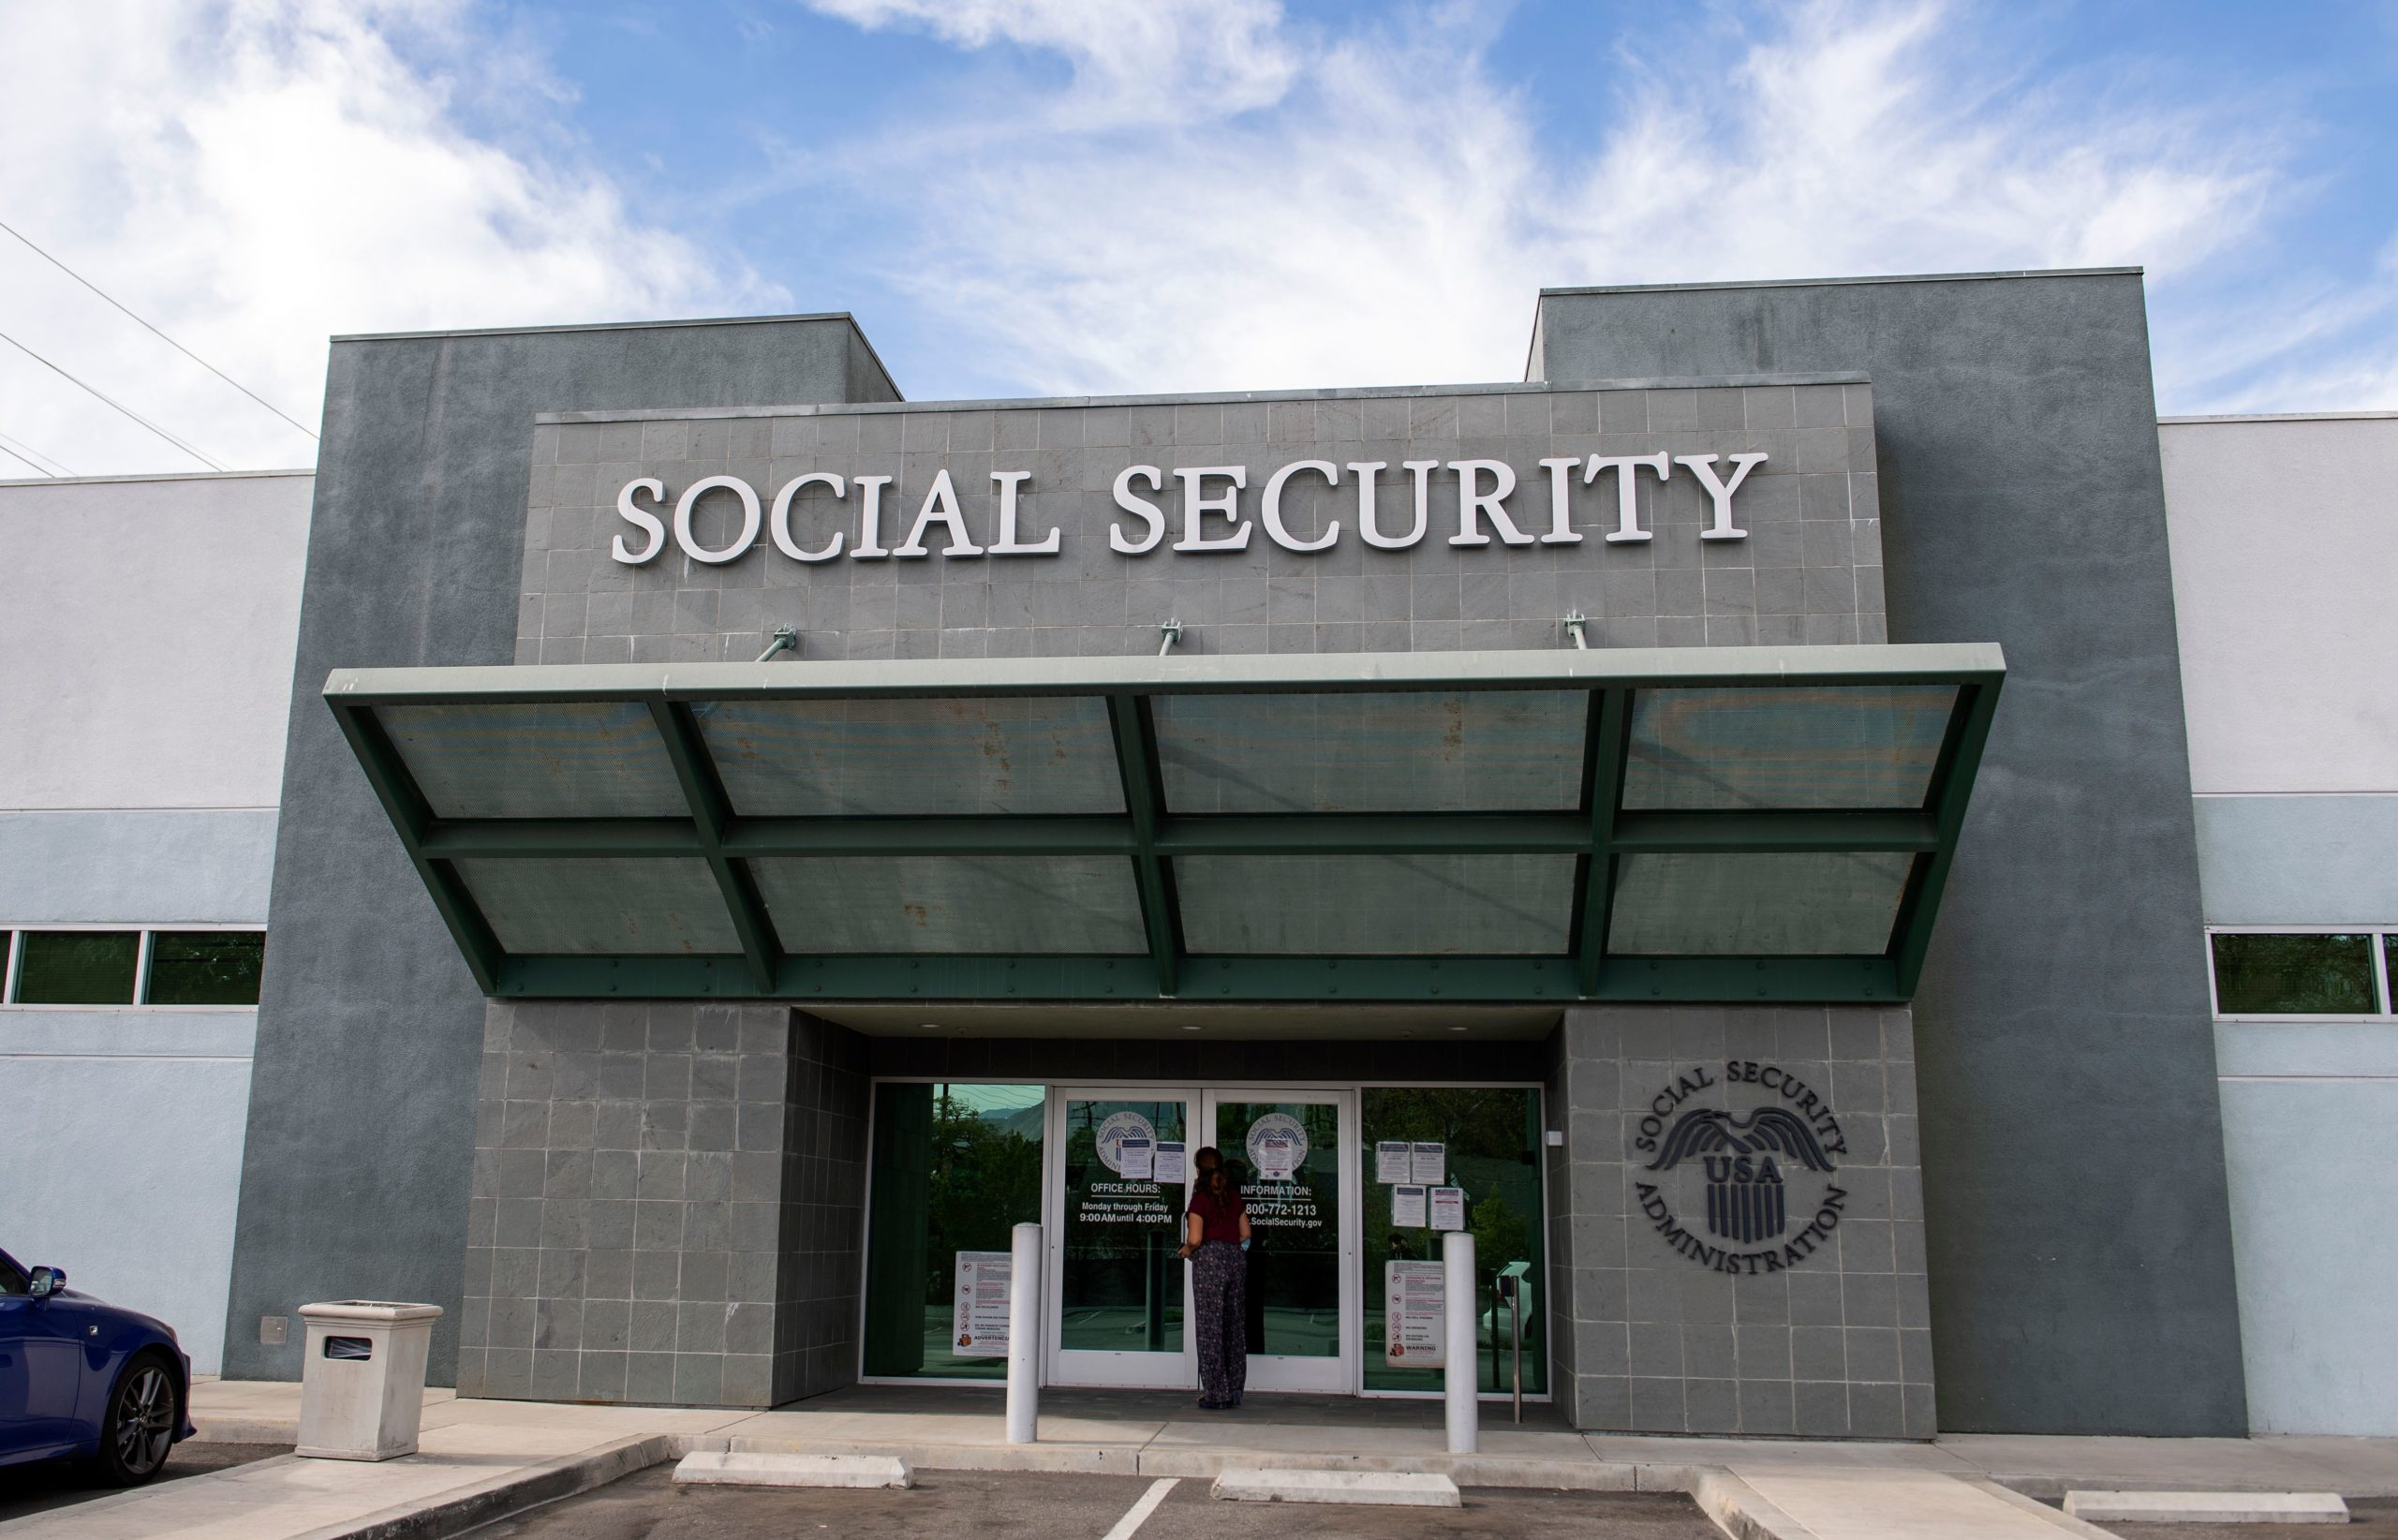 The Social Security Administration building in Burbank, California is pictured on Nov. 5, 2020. (Valerie Macon/AFP via Getty Images)